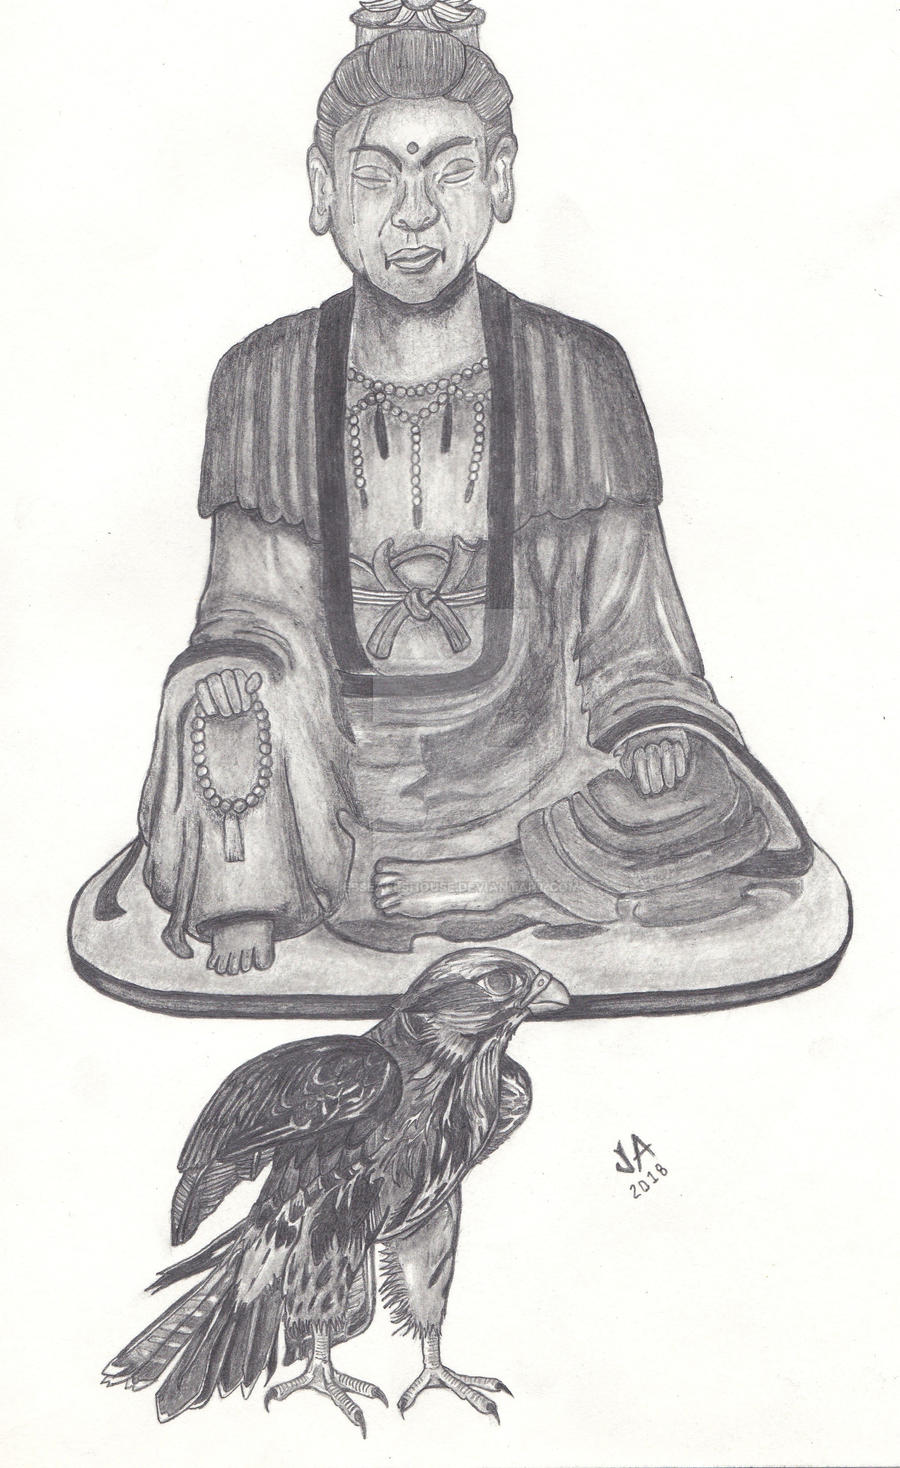 The Buddah and the Falcon Sketch